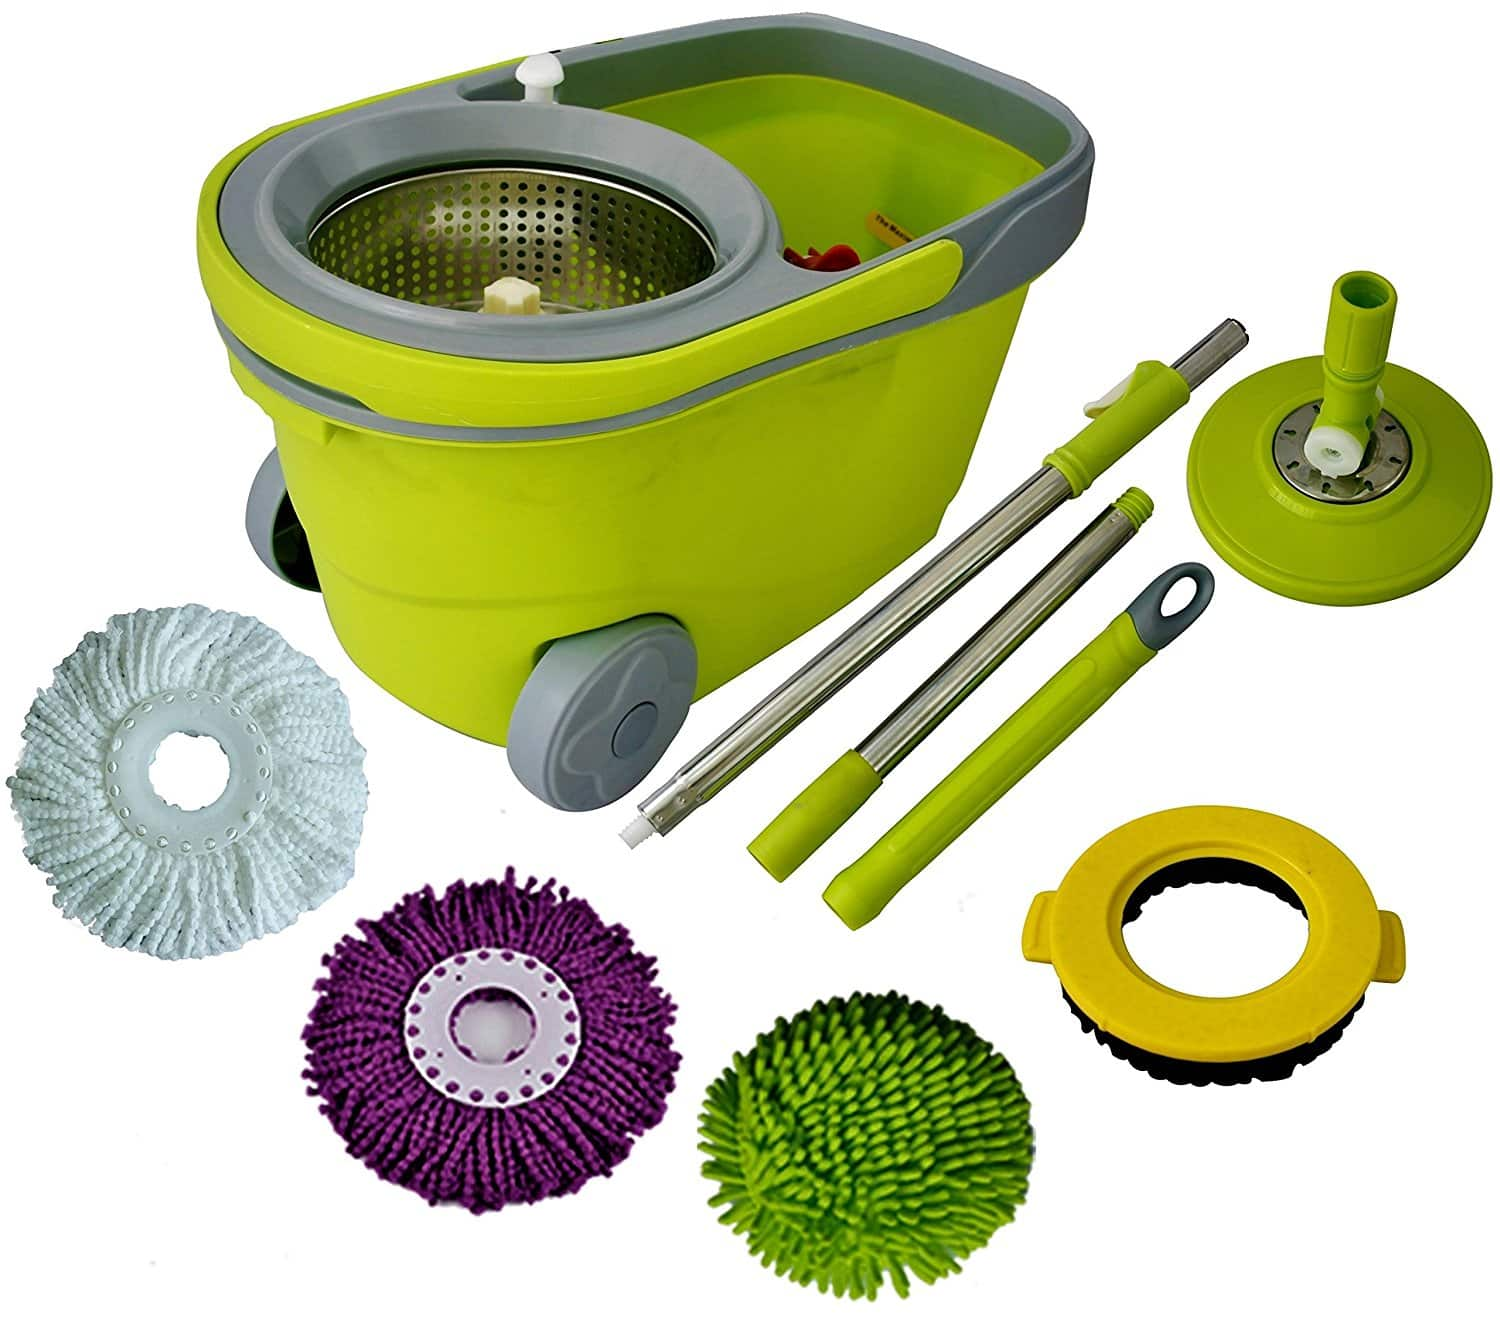 Spin Mop and Bucket Cleaning System with Microfiber Head $31.96